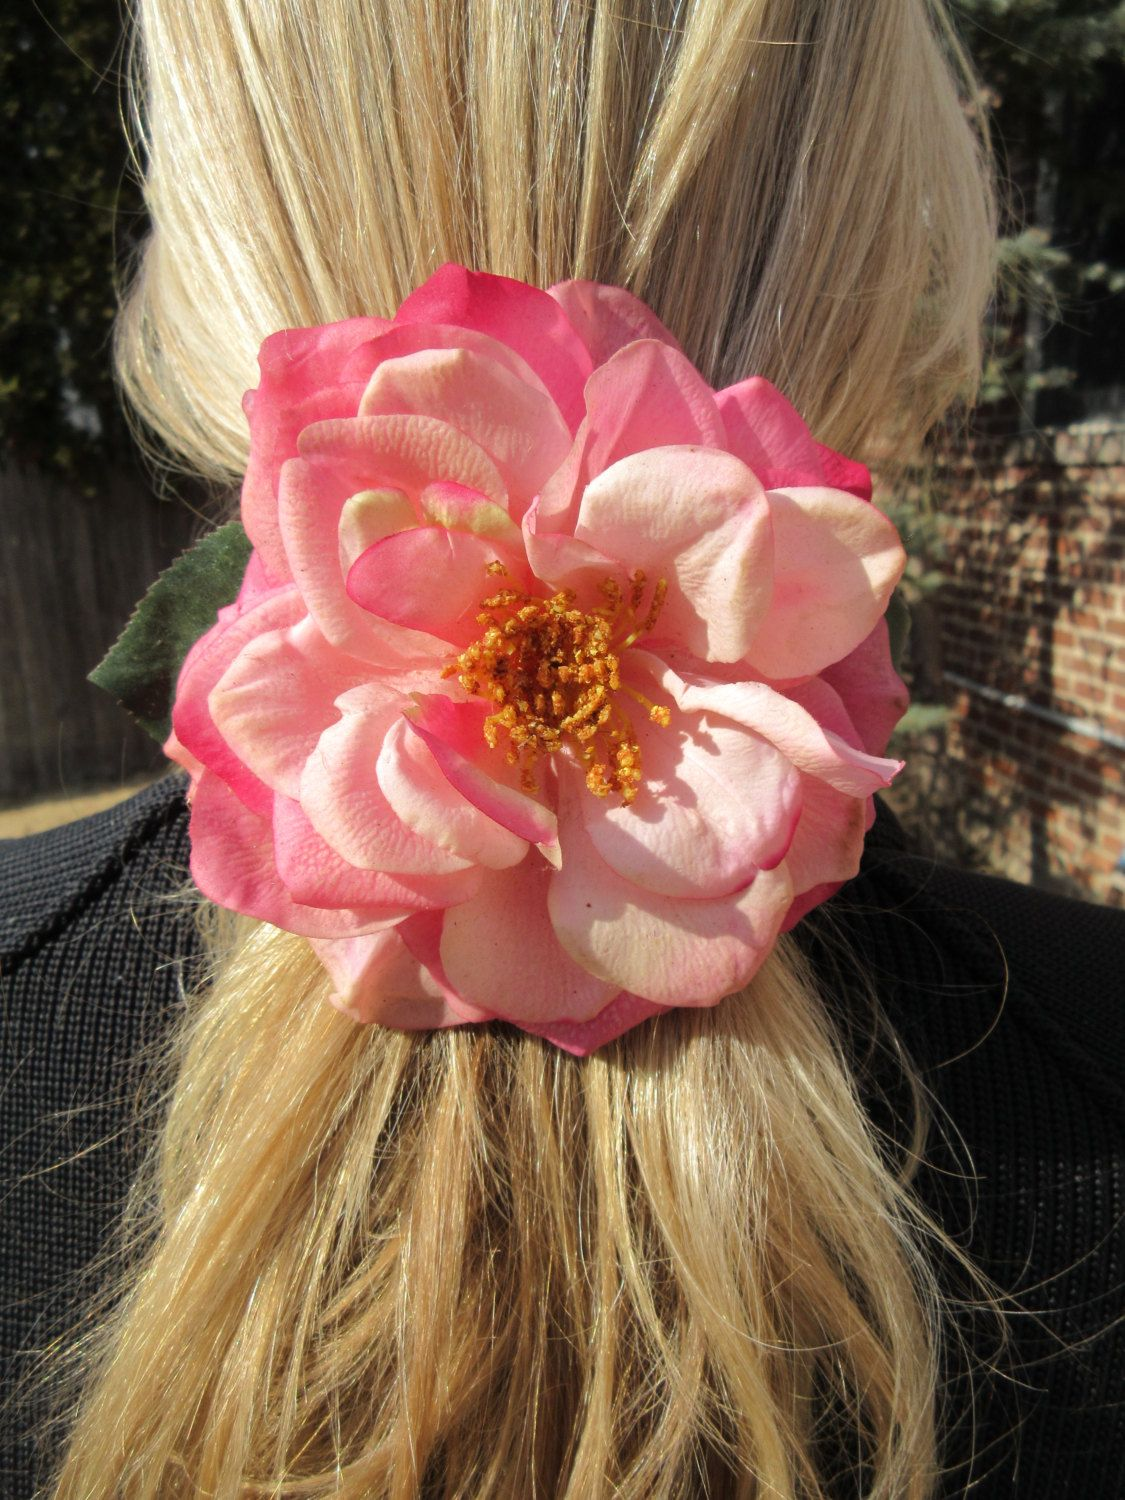 Silk Flower Barrette Large Pink Floral Hair Clip Boho Chic Accessory